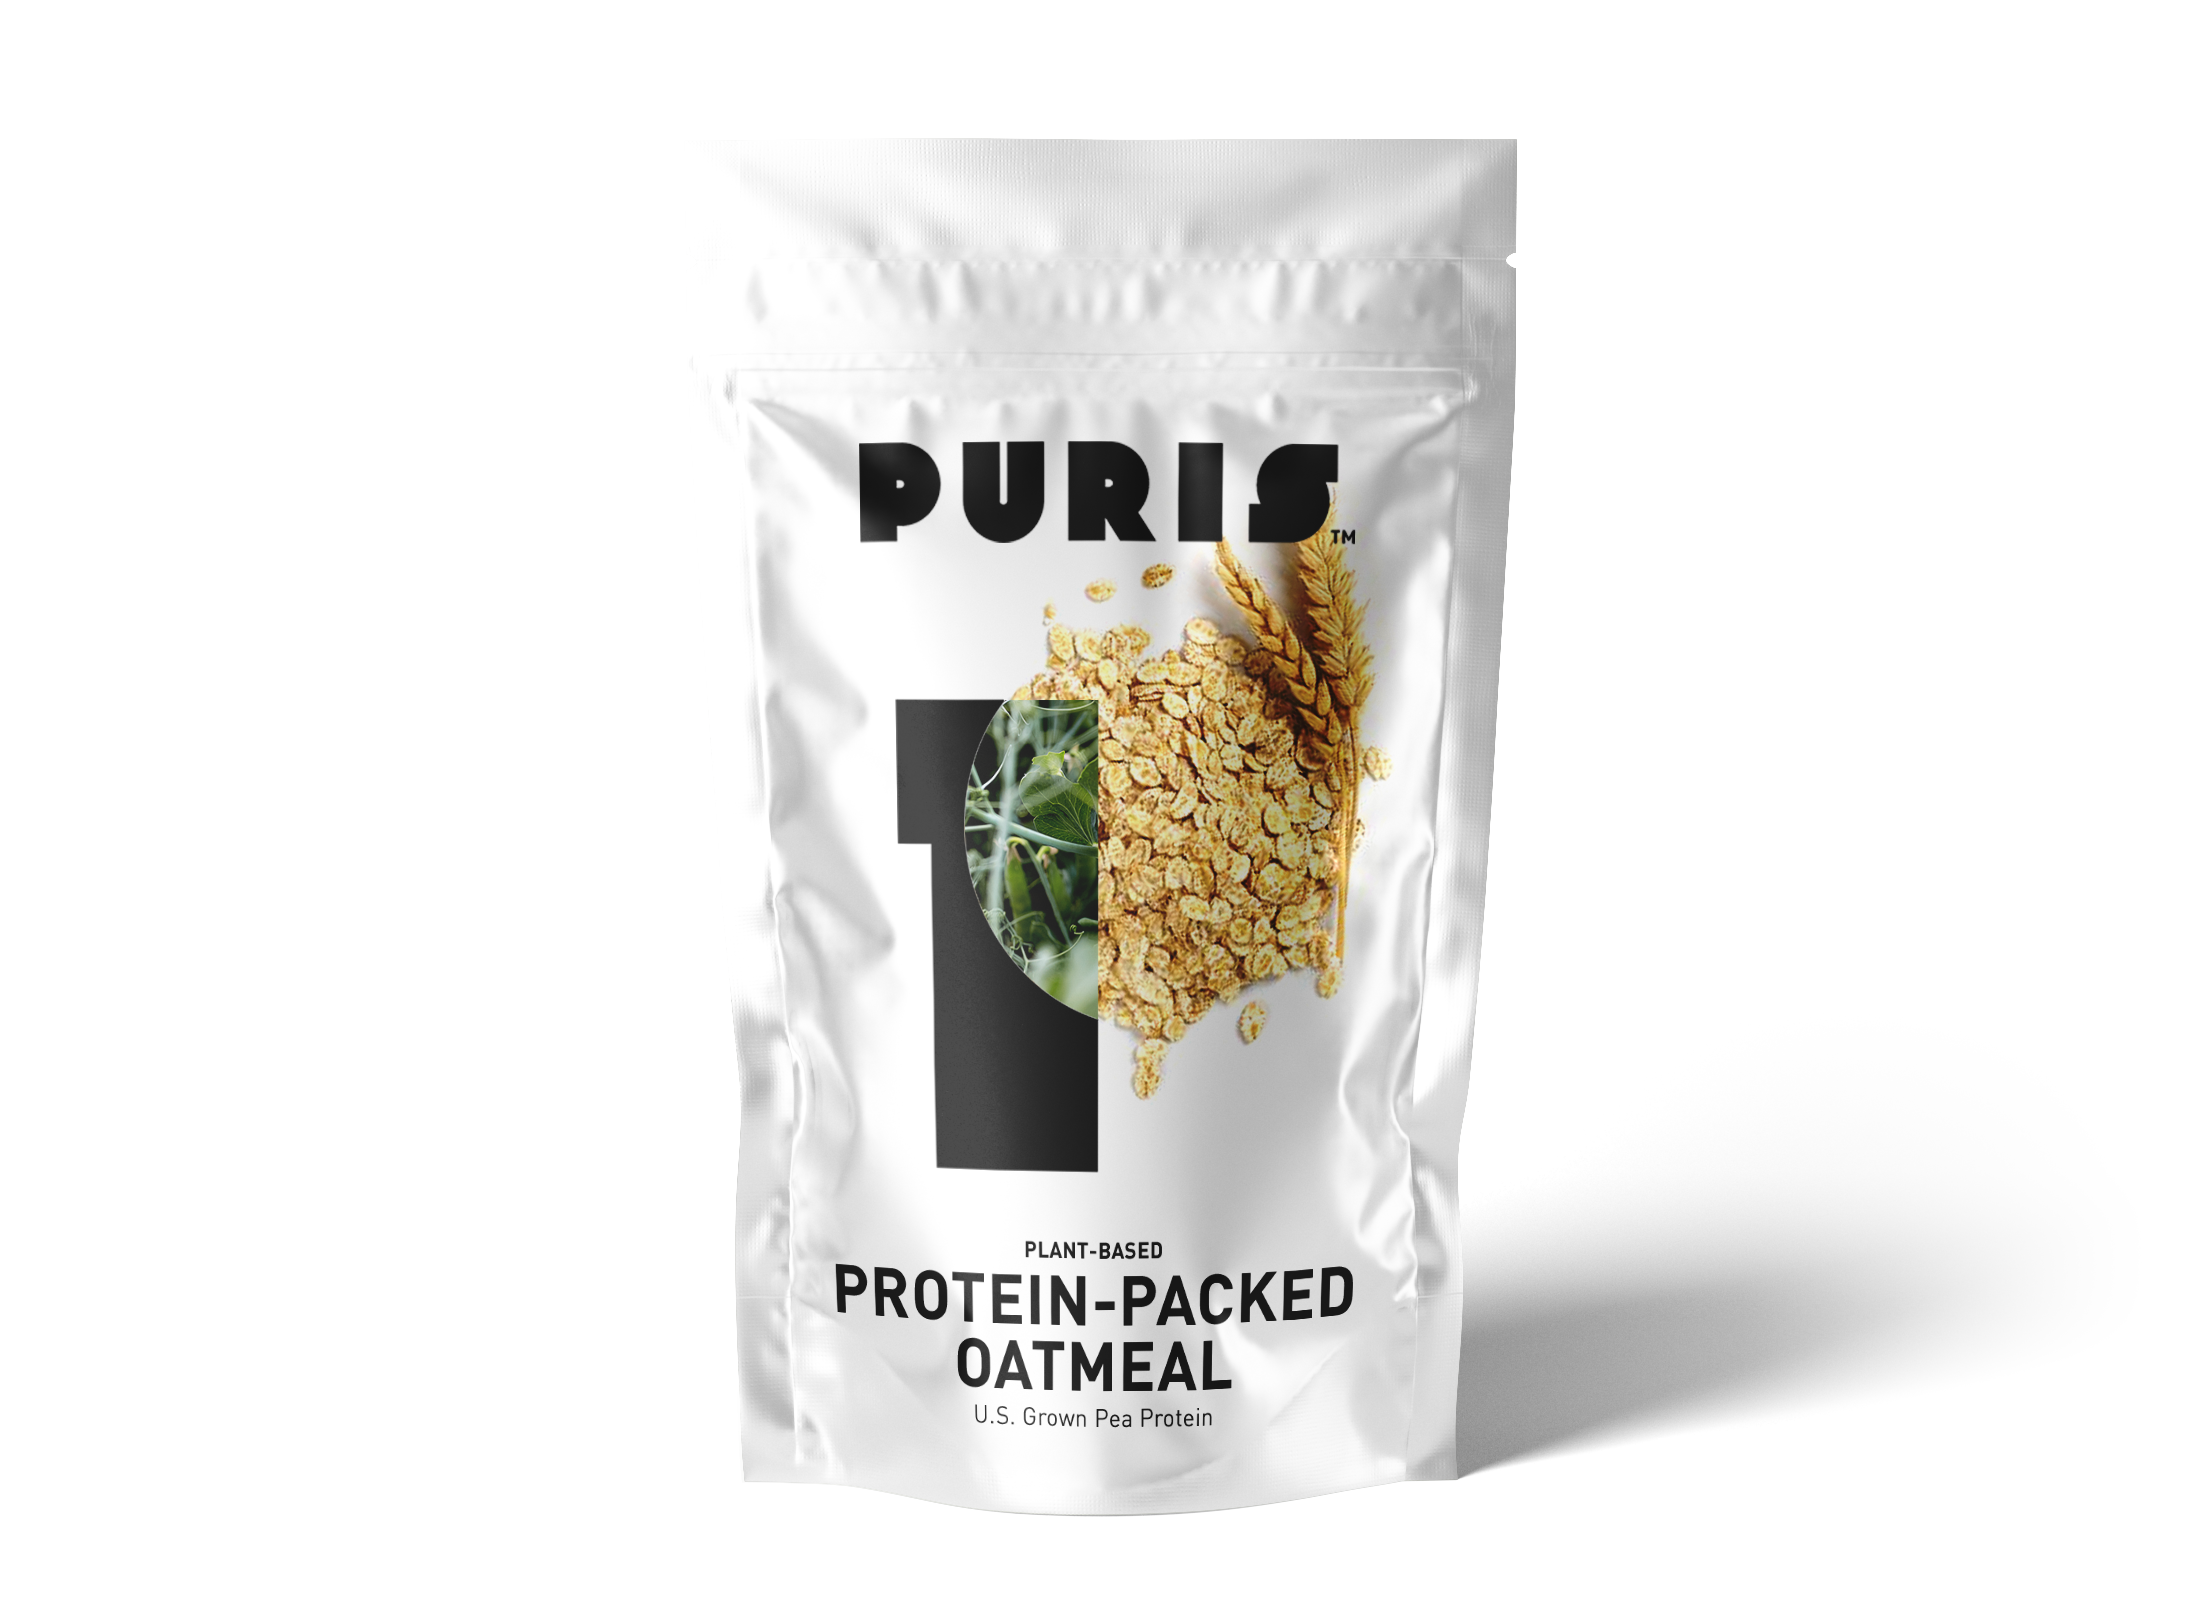 PURIS Plant Protein Oatmeal